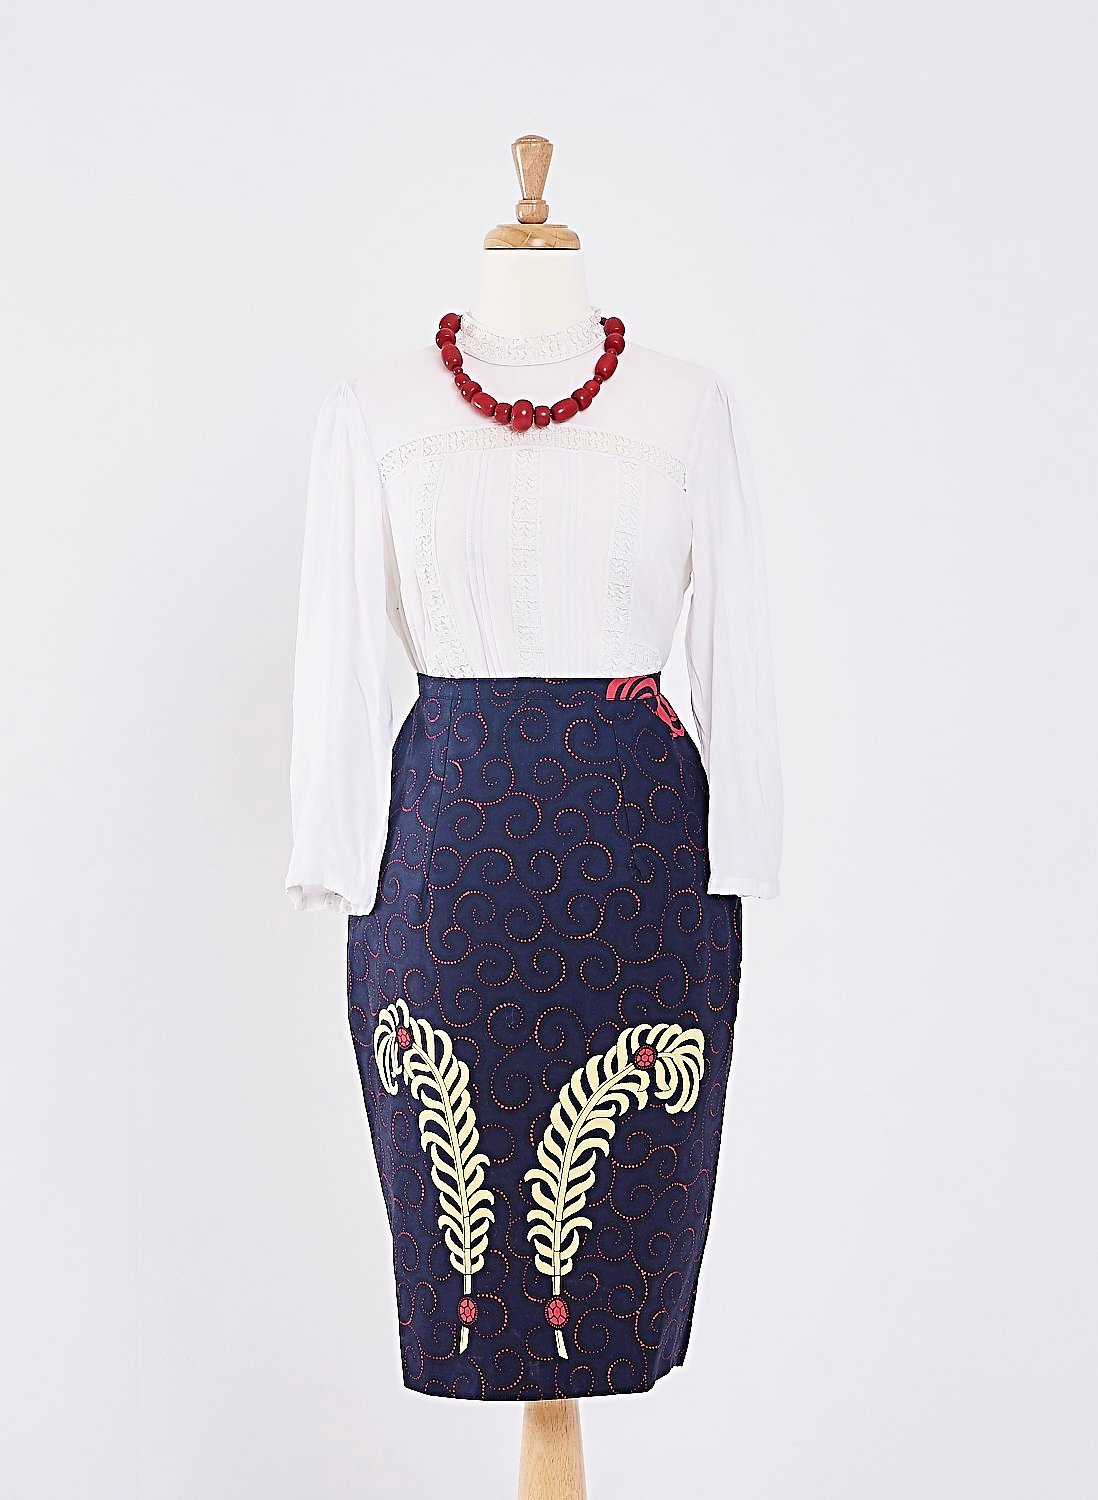 NYA Ankara Pencil skirt - Navy blue with cream feather accents